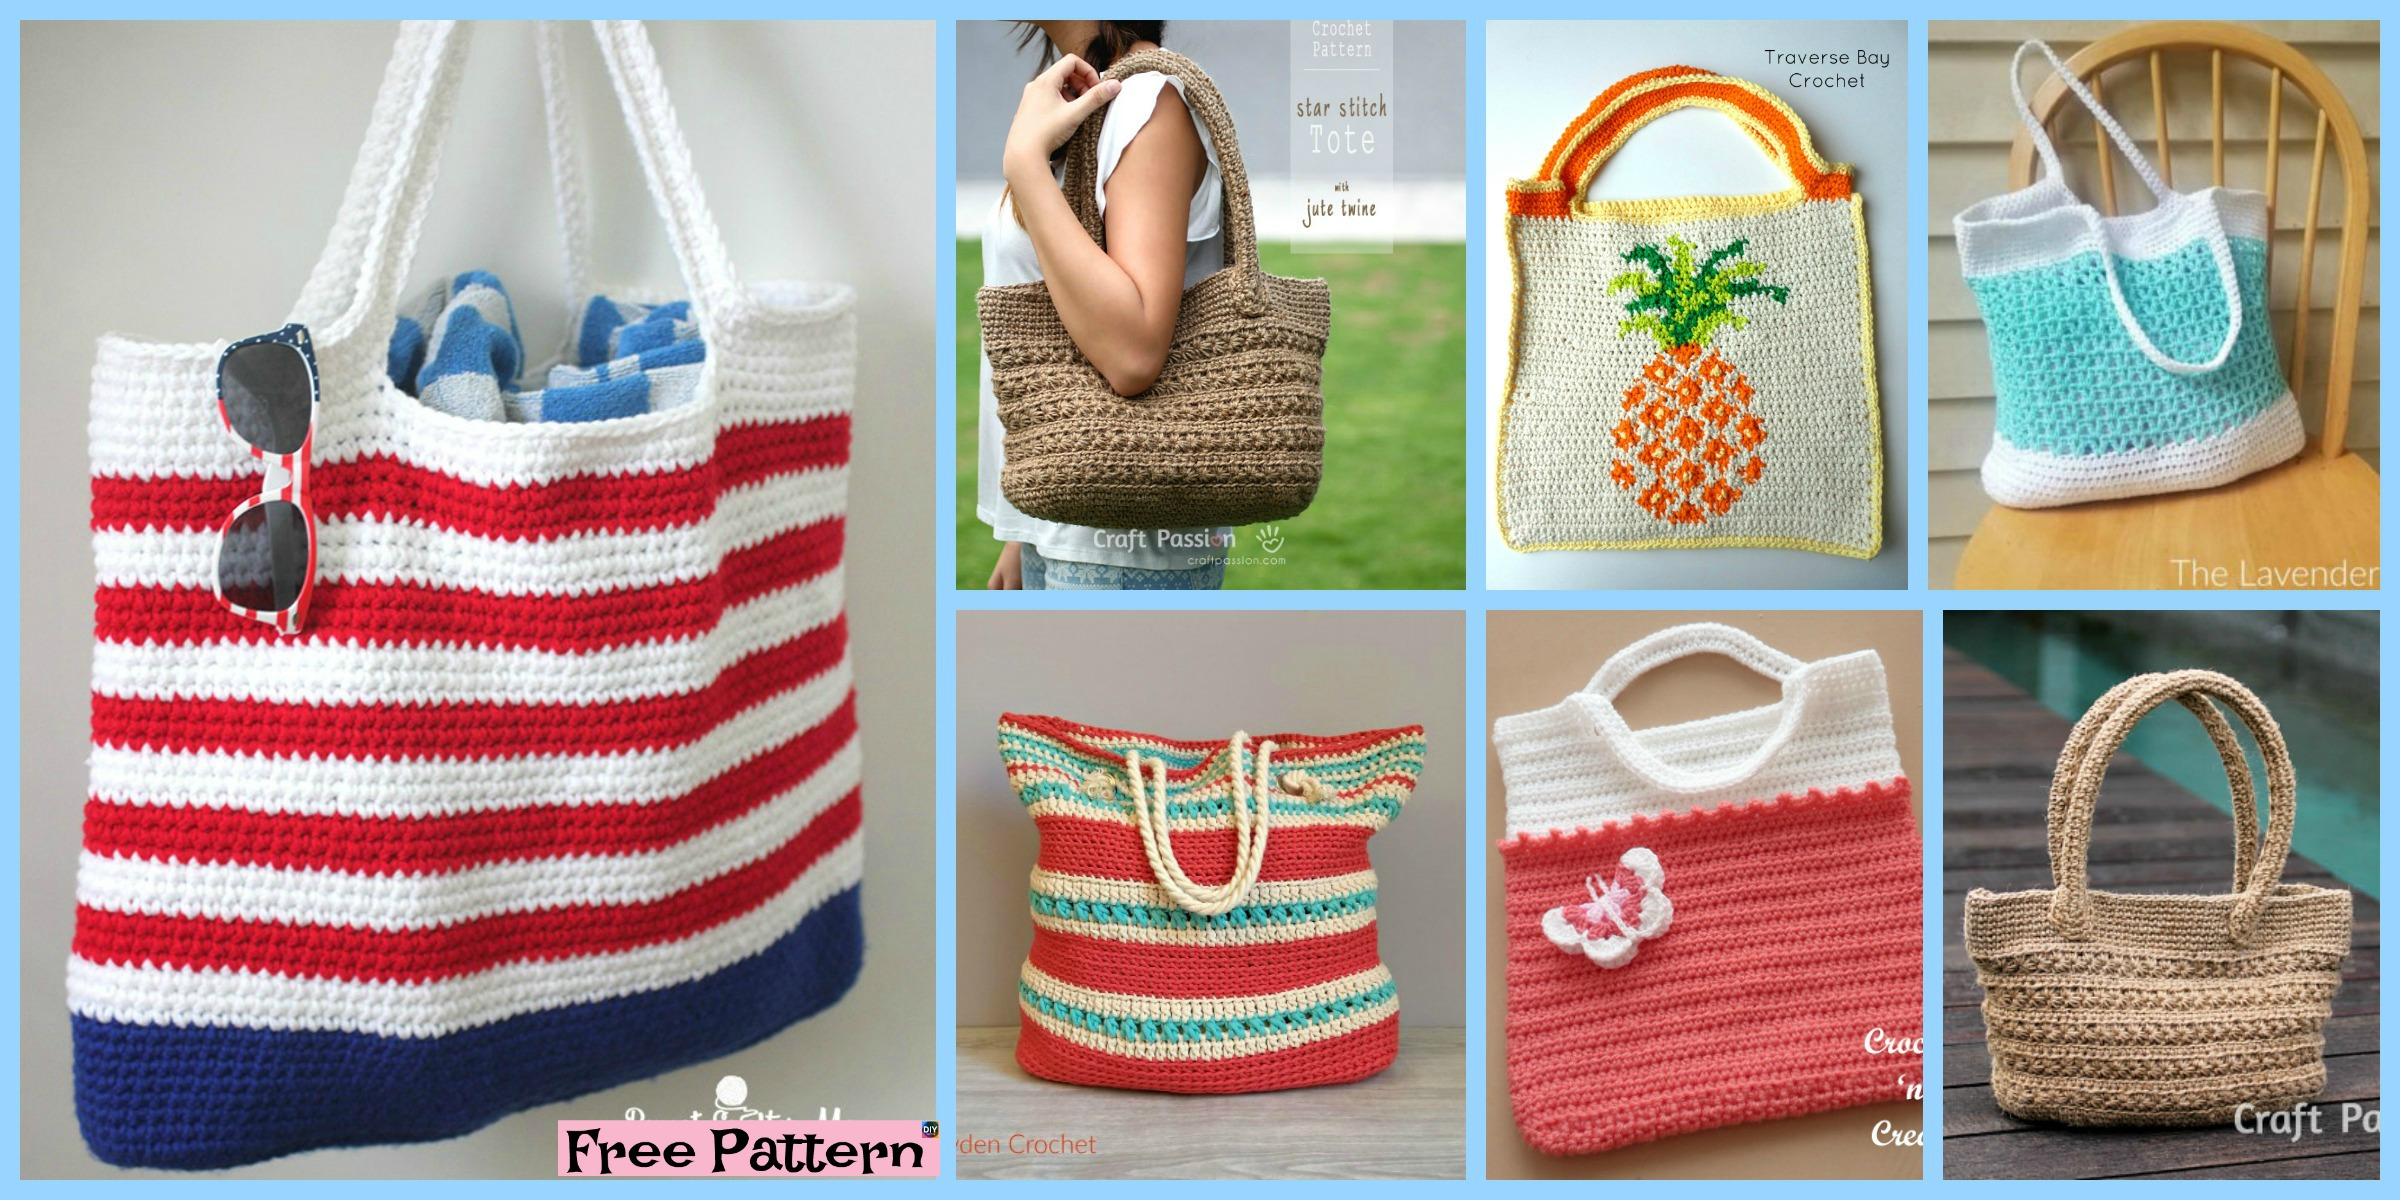 10 Pretty Crocheted Tote Bags – Free Patterns